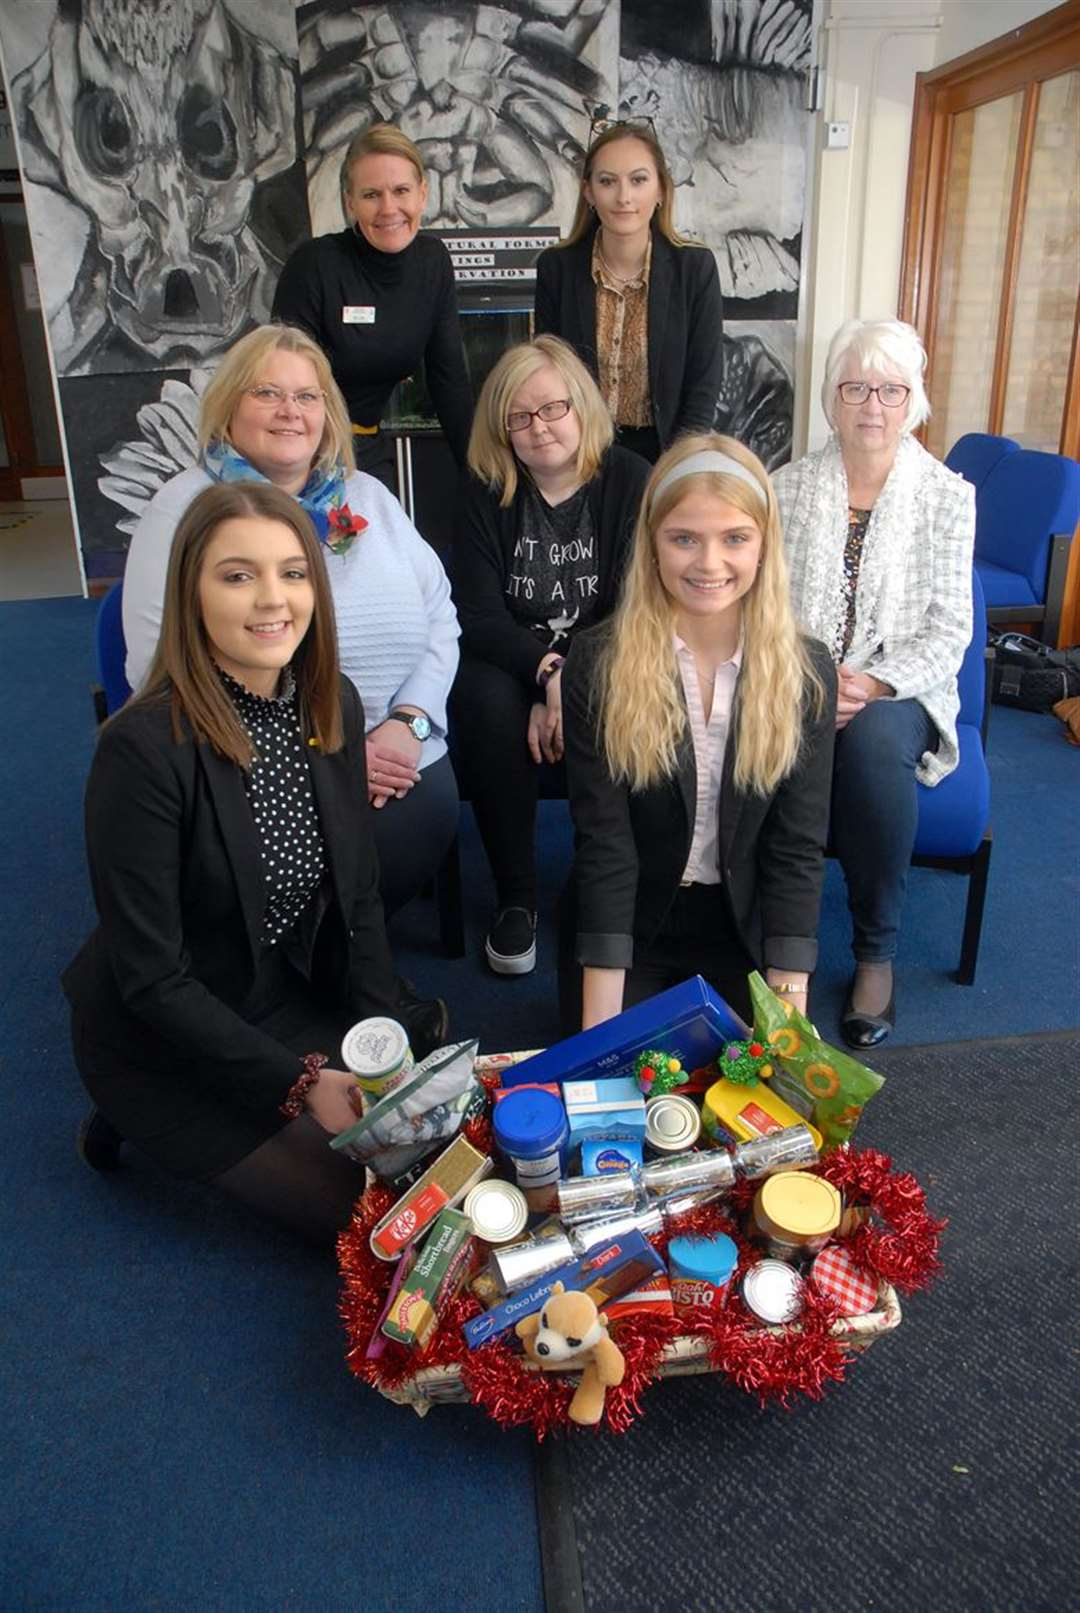 The launch of this year's Spalding Guardian Christmas Foodbank Appeal at Spalding High School, with (back) assistant head Lara Ray and student Hannah Lane, (middle) headmistress Michelle Anderson, foodbank volunteer Catherine Smith and foodbank coordinator, Irene Davies, (front) students Lucy Twelves and Grace Wood.Photo (TIM WILSON): SG-291019-002TW.